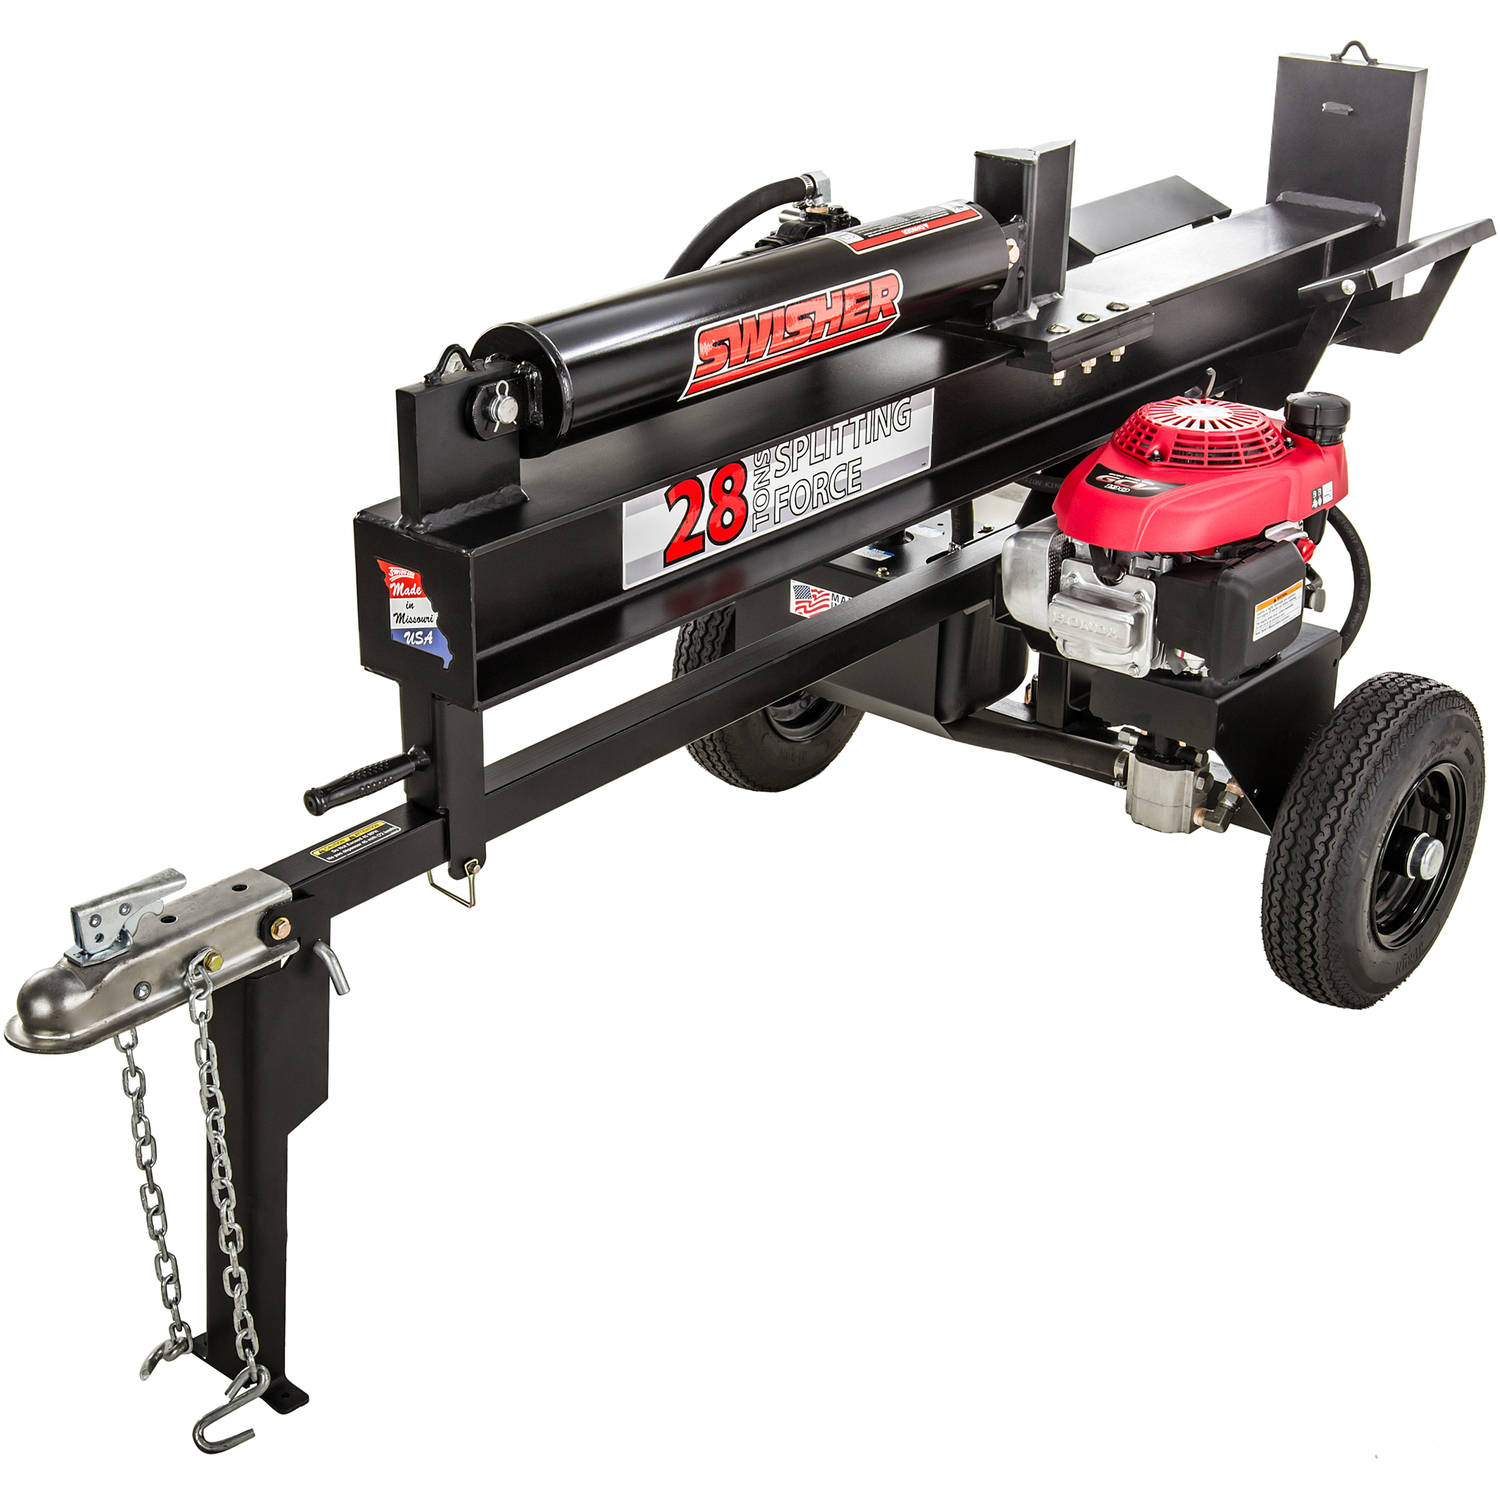 Swisher 5.1HP Honda 28 Ton Direct Drive Log Splitter by Swisher Acquisition, Inc